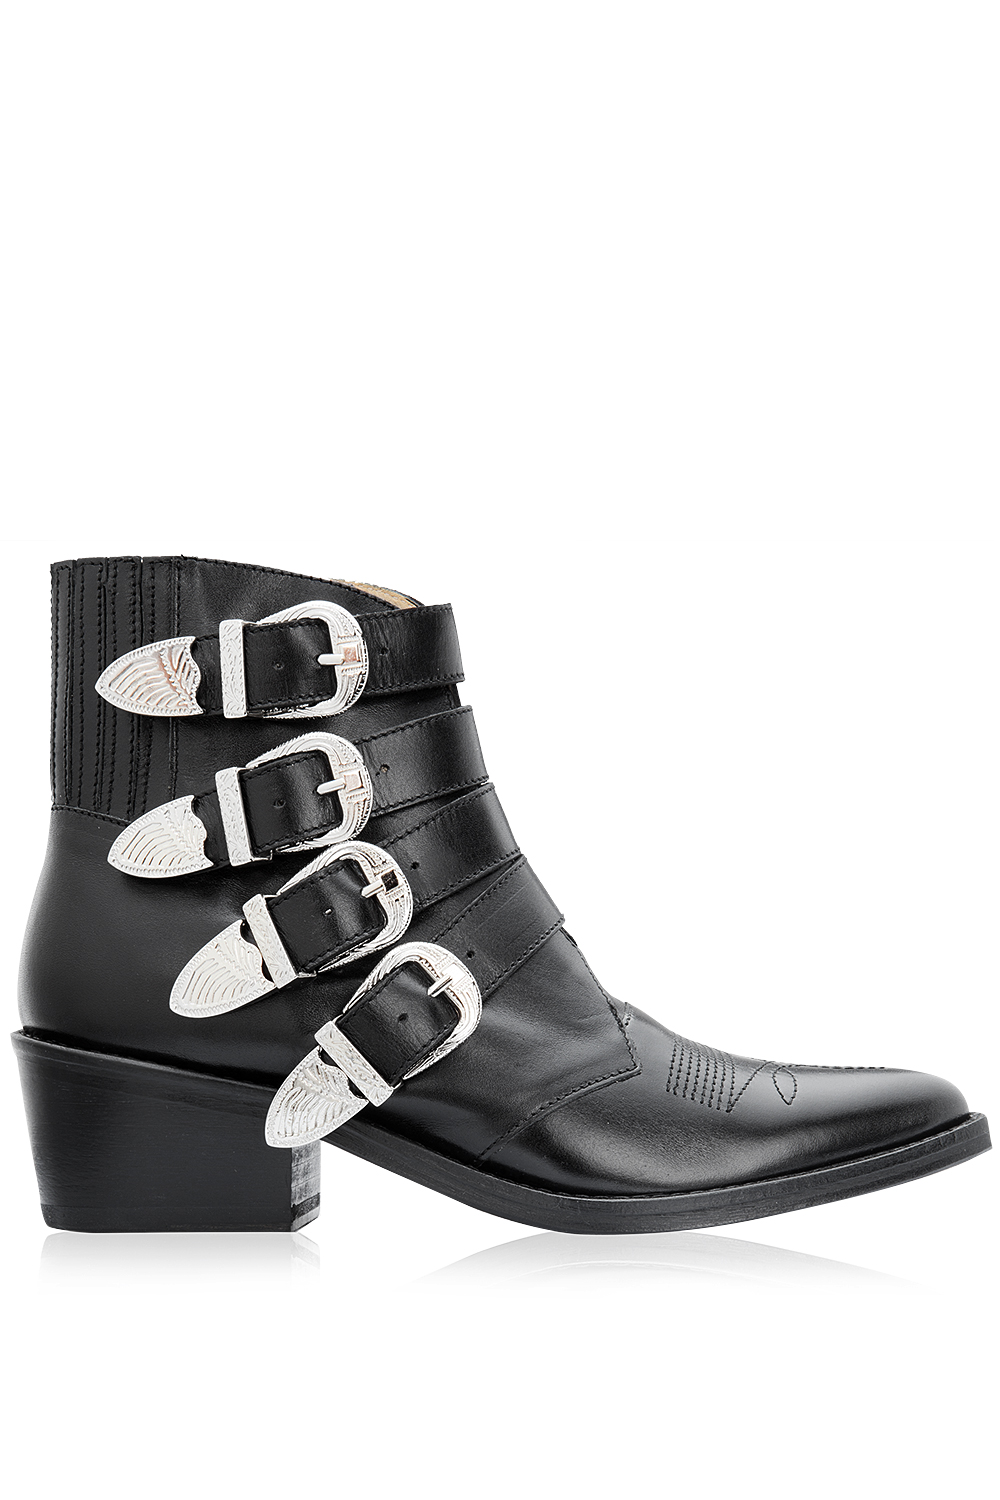 Toga Pulla Multi Buckle Ankle Boots Black 365ist